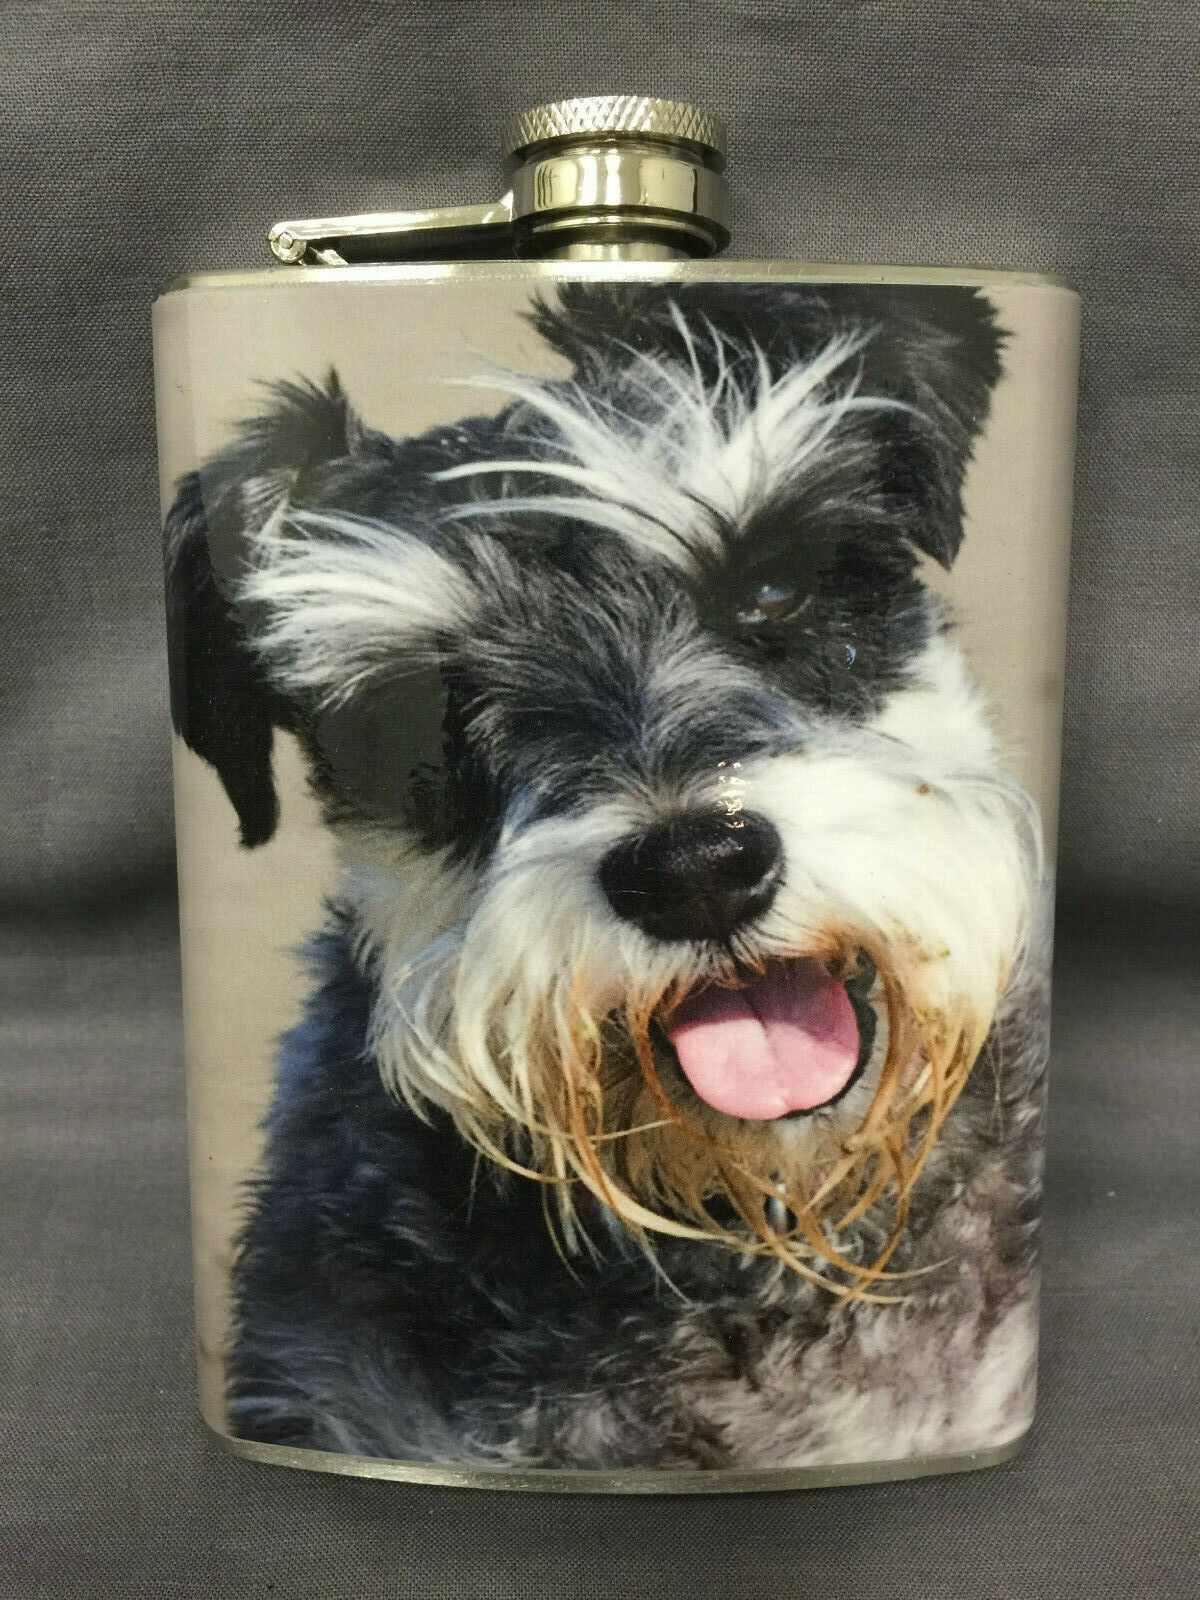 Dog Schnauzer Portrait Flask 8oz Stainless Steel Drinking Whiskey Clearance item